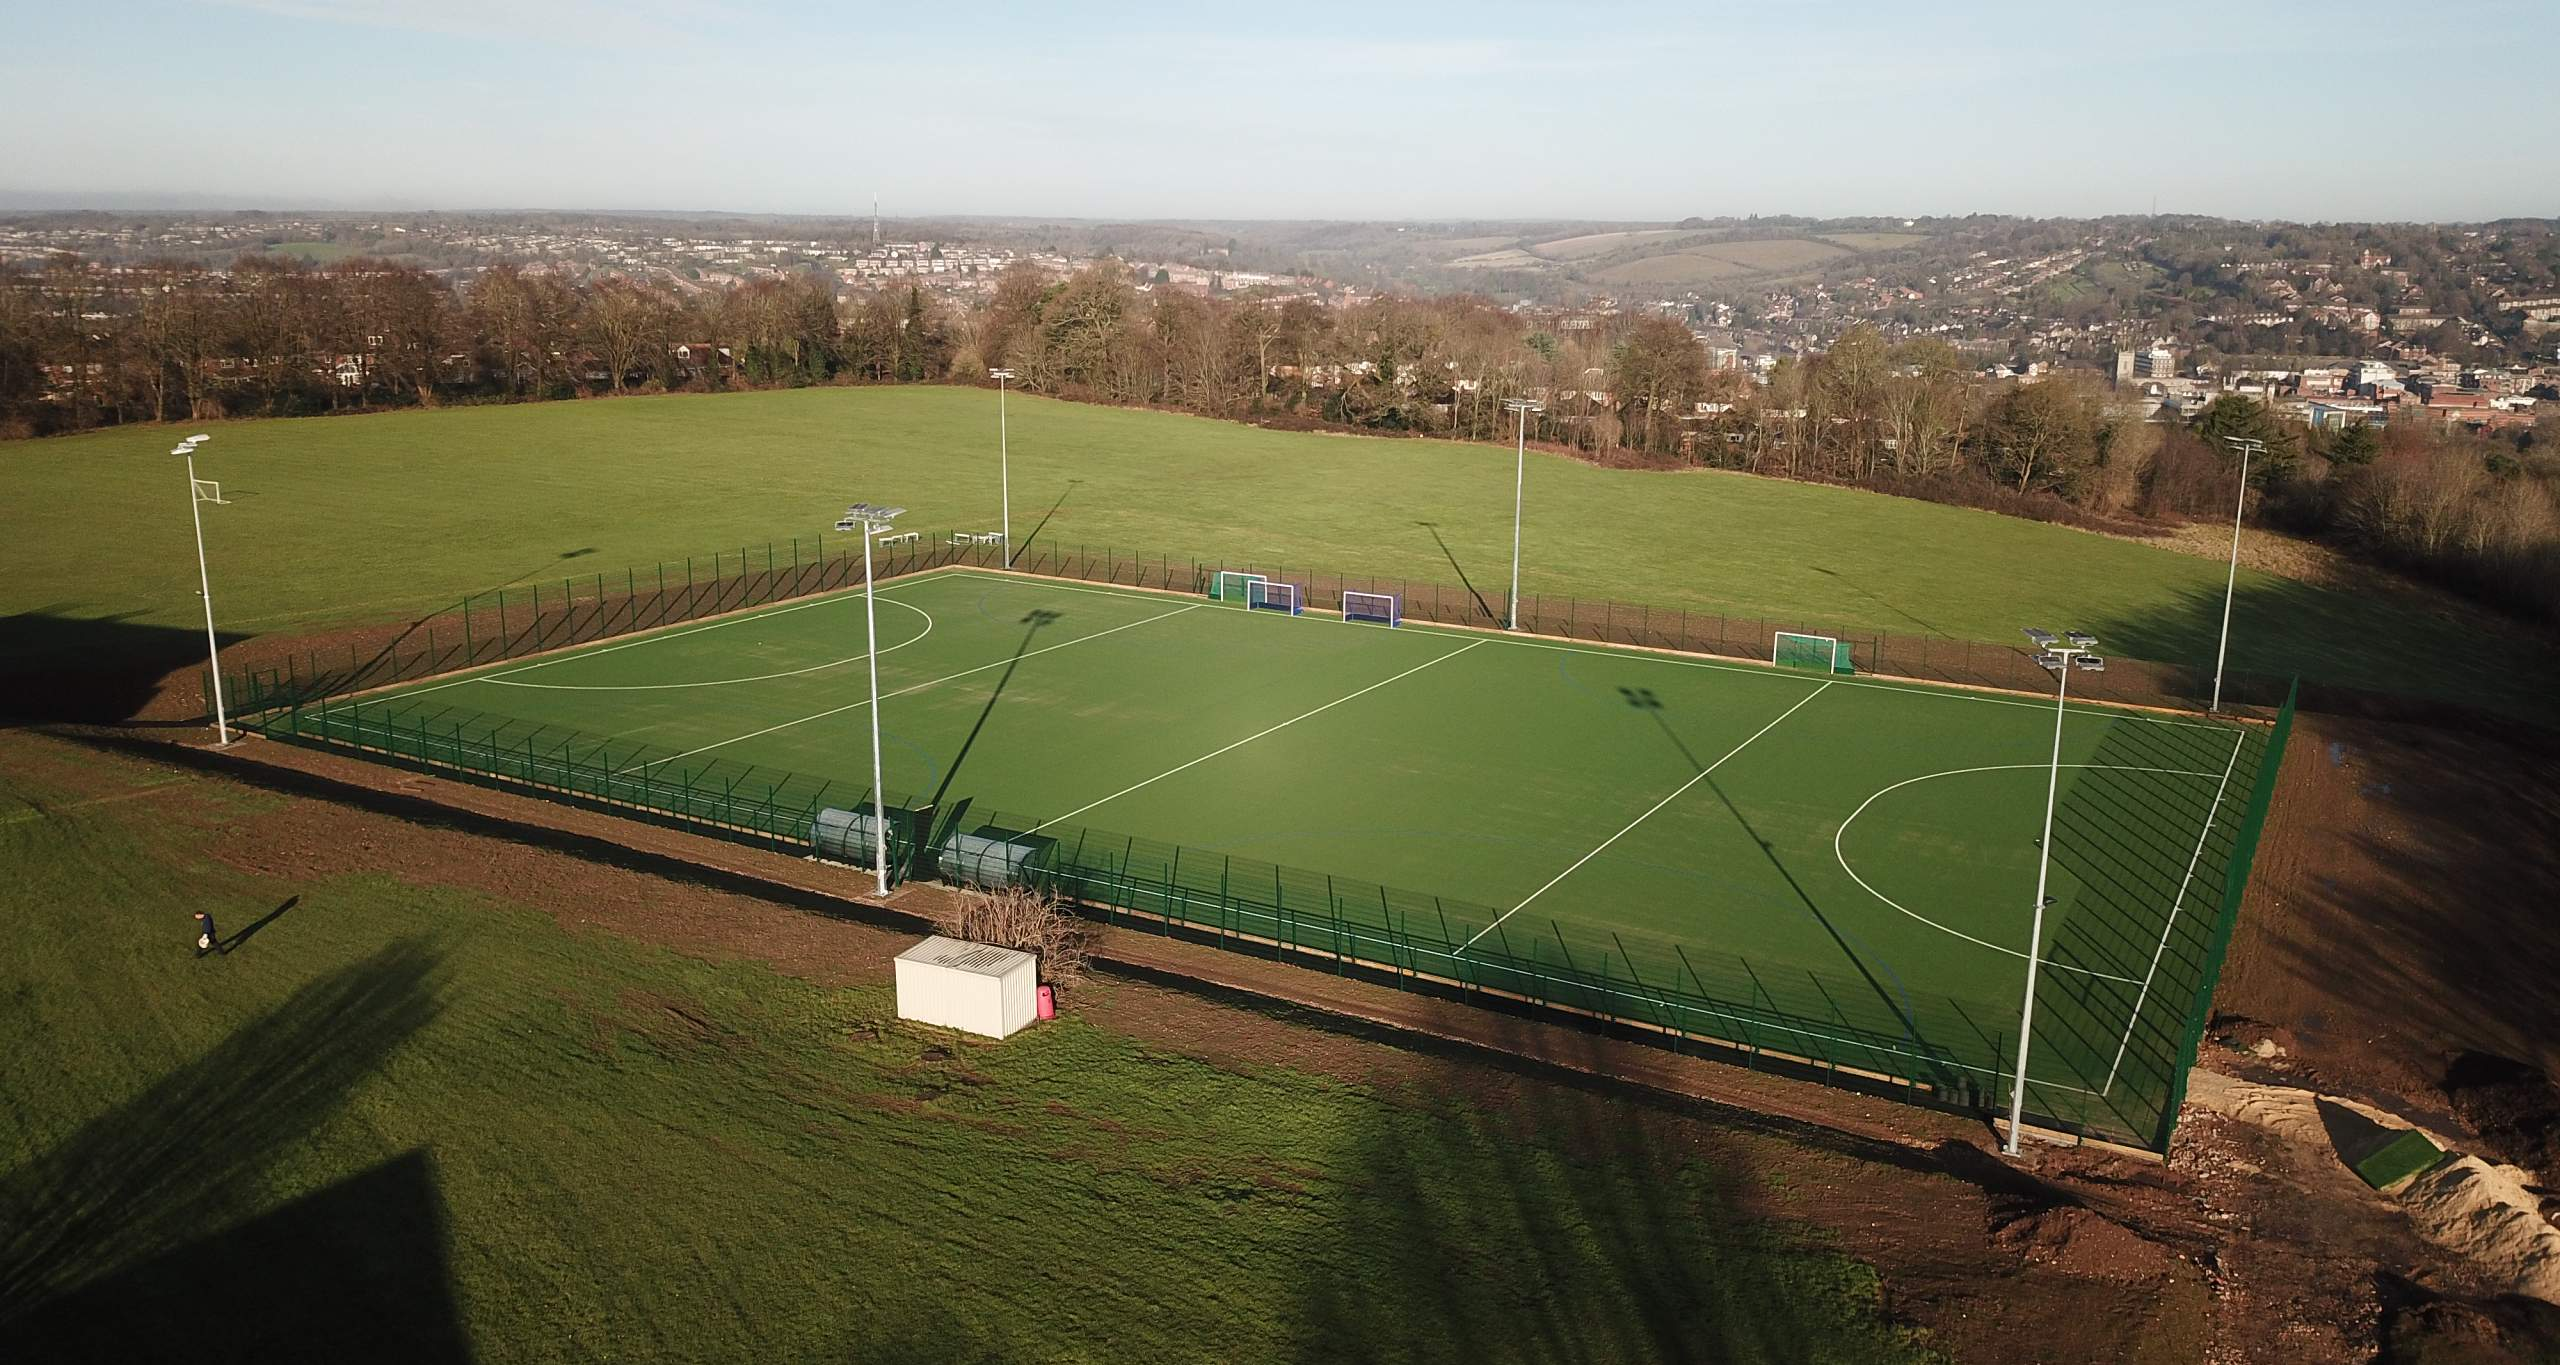 Construction of an Artificial Turf Pitch with fencing and floodlighting